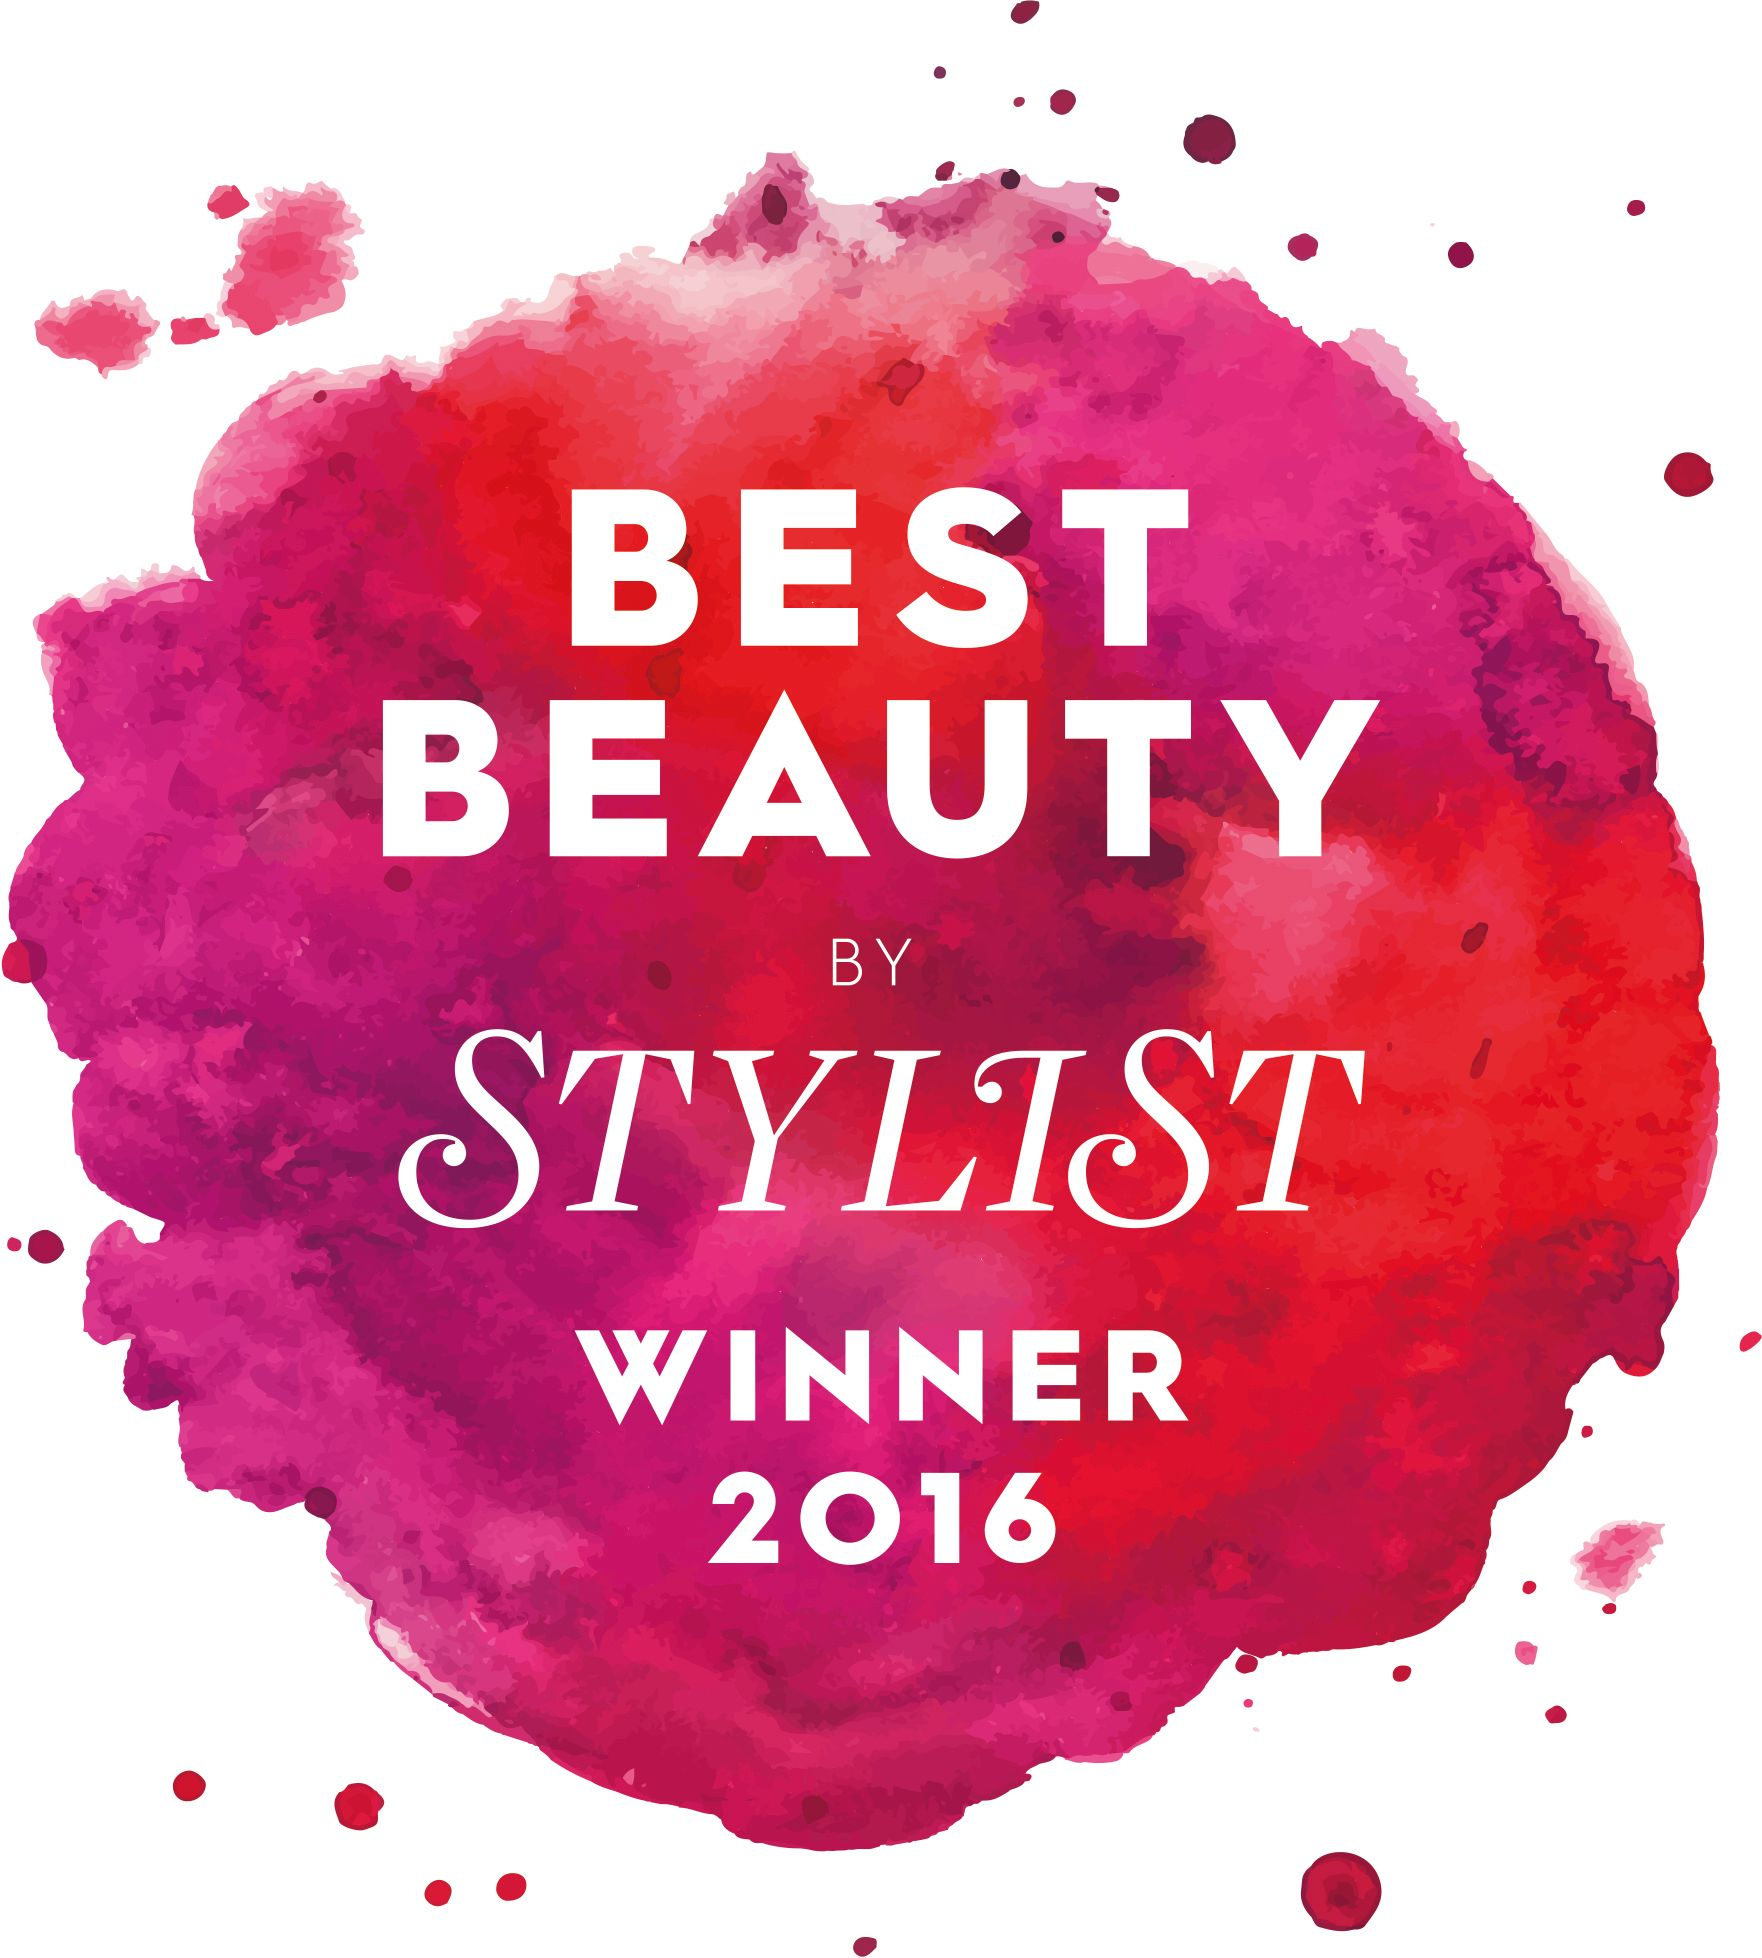 Best Beauty 2016